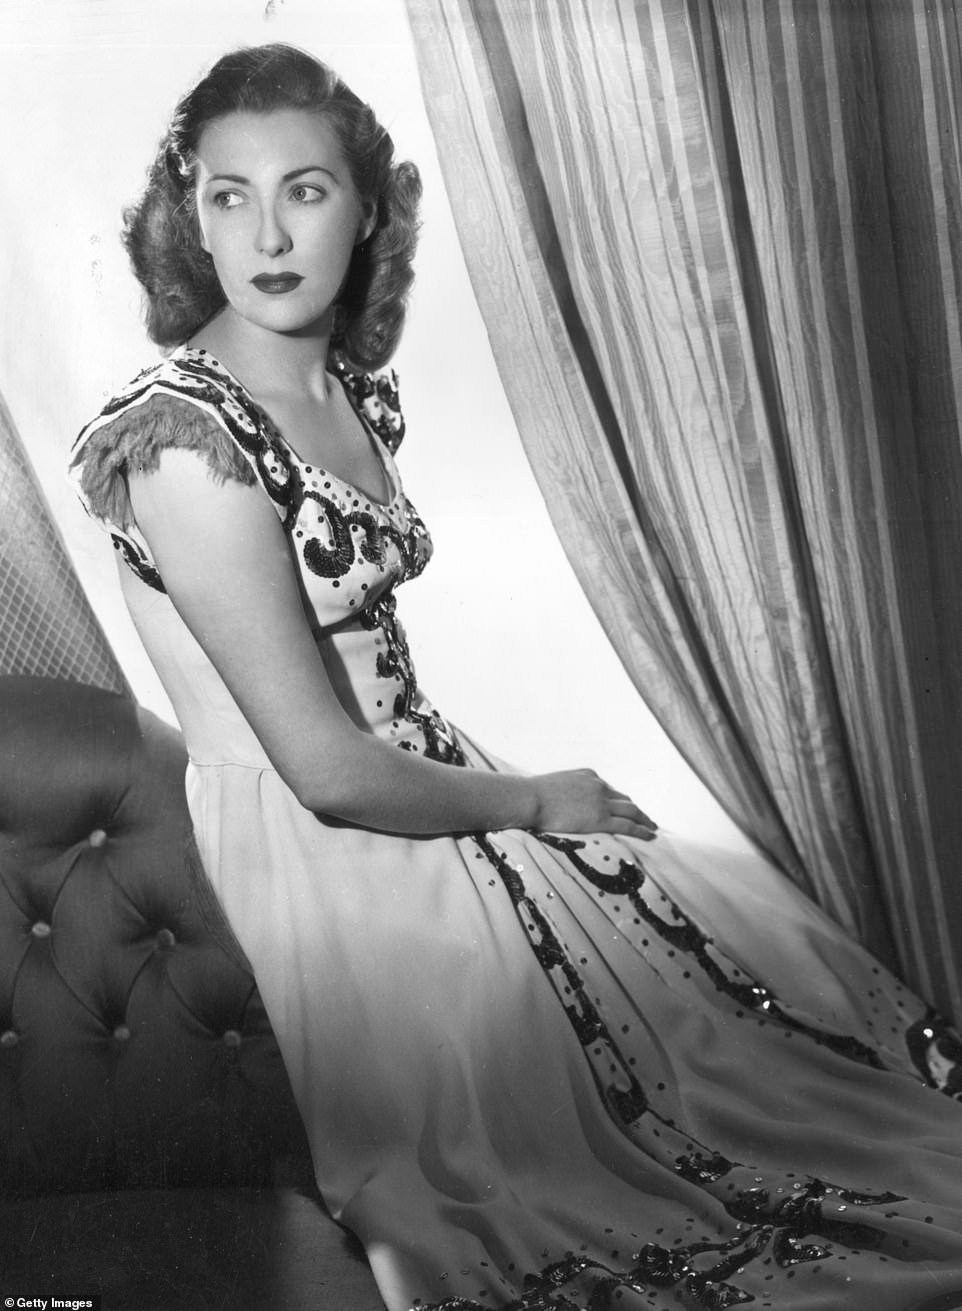 Dame Vera, pictured in 1940, shortly before she married her musician husband Harry Lewis in 1941 after meeting him in 1939